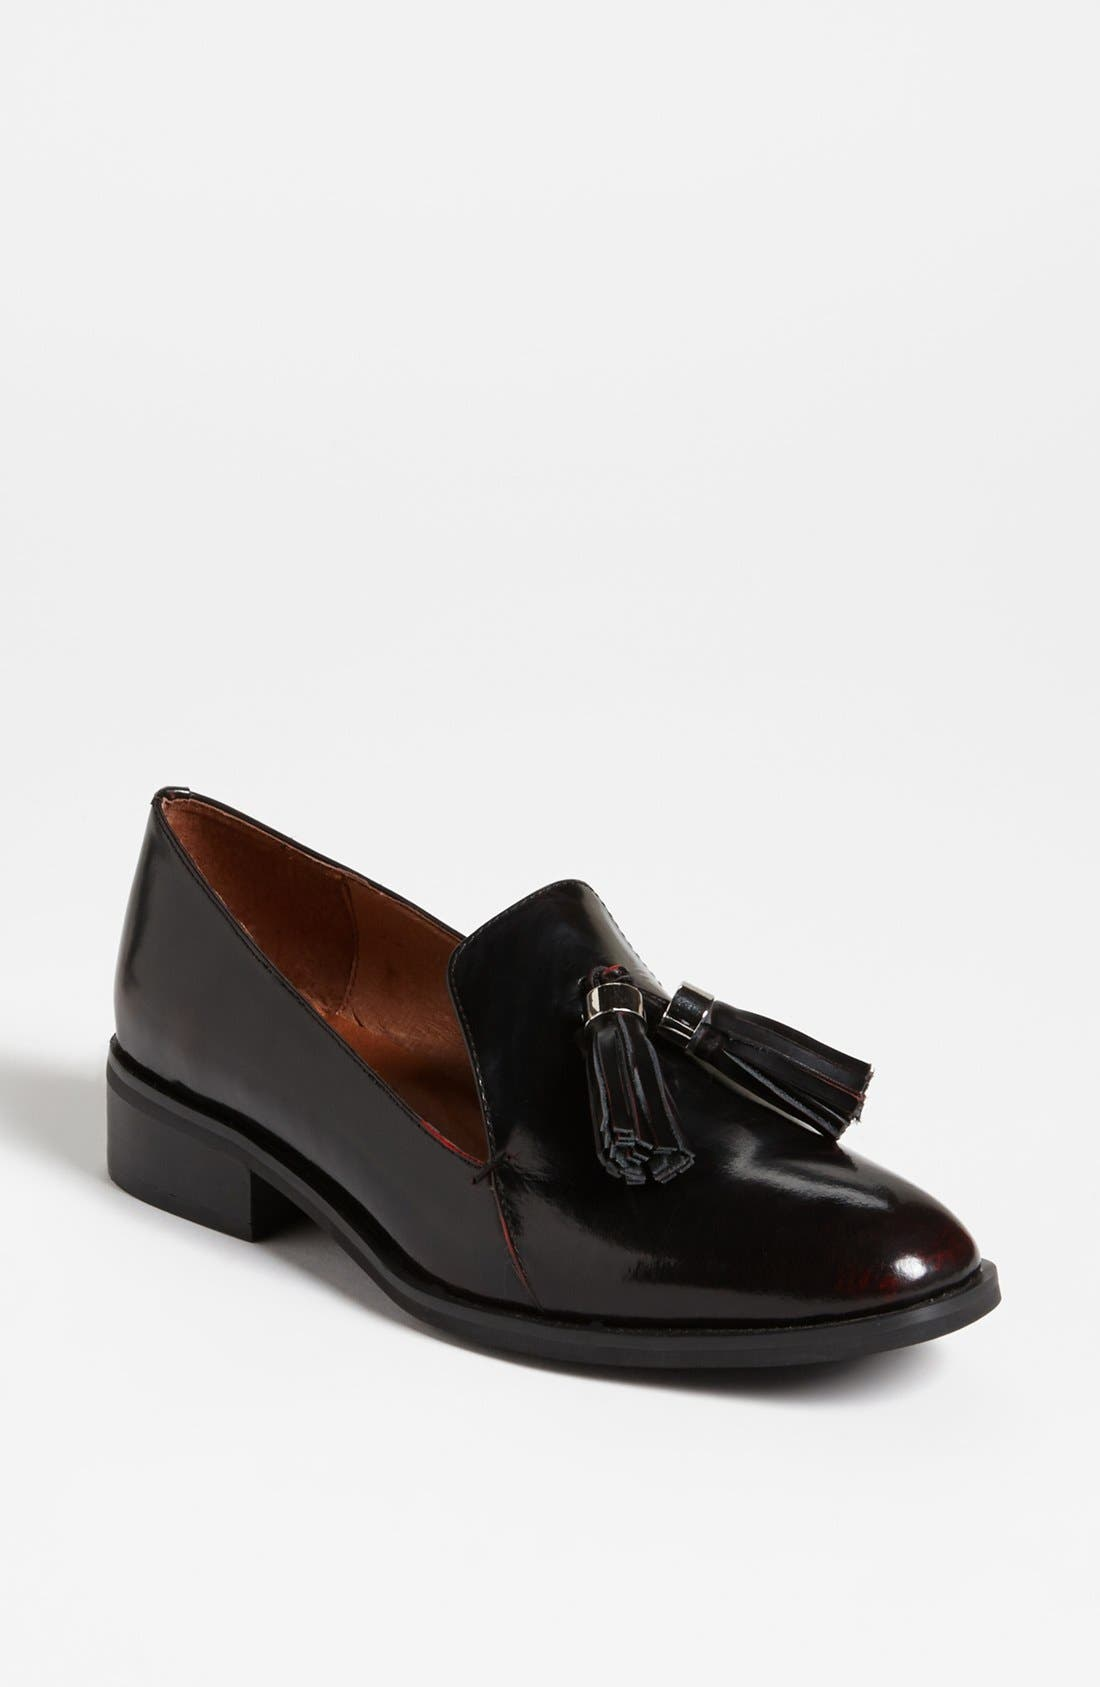 Alternate Image 1 Selected - Jeffrey Campbell 'Lawford' Loafer